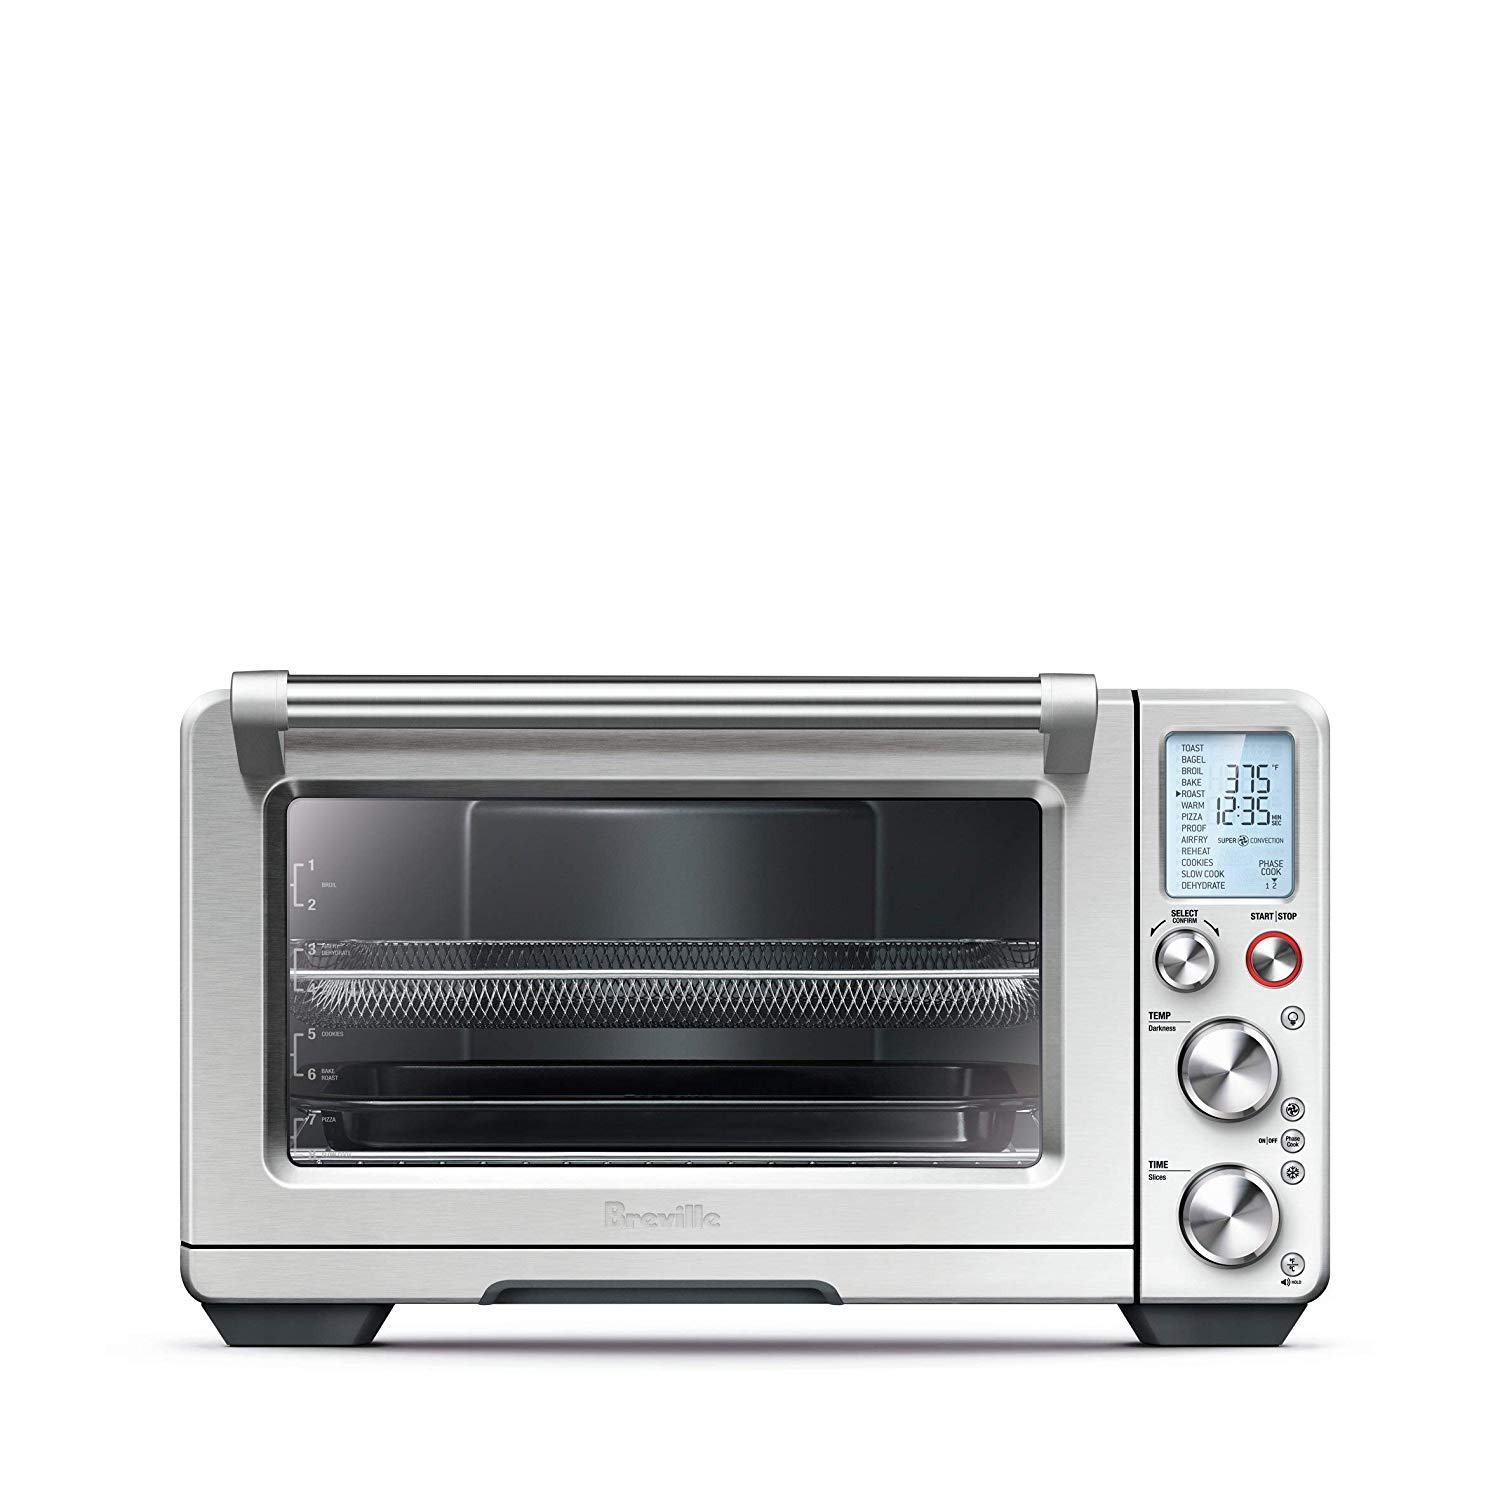 Breville BOV900 BSS Convection and Air Fry Smart Oven